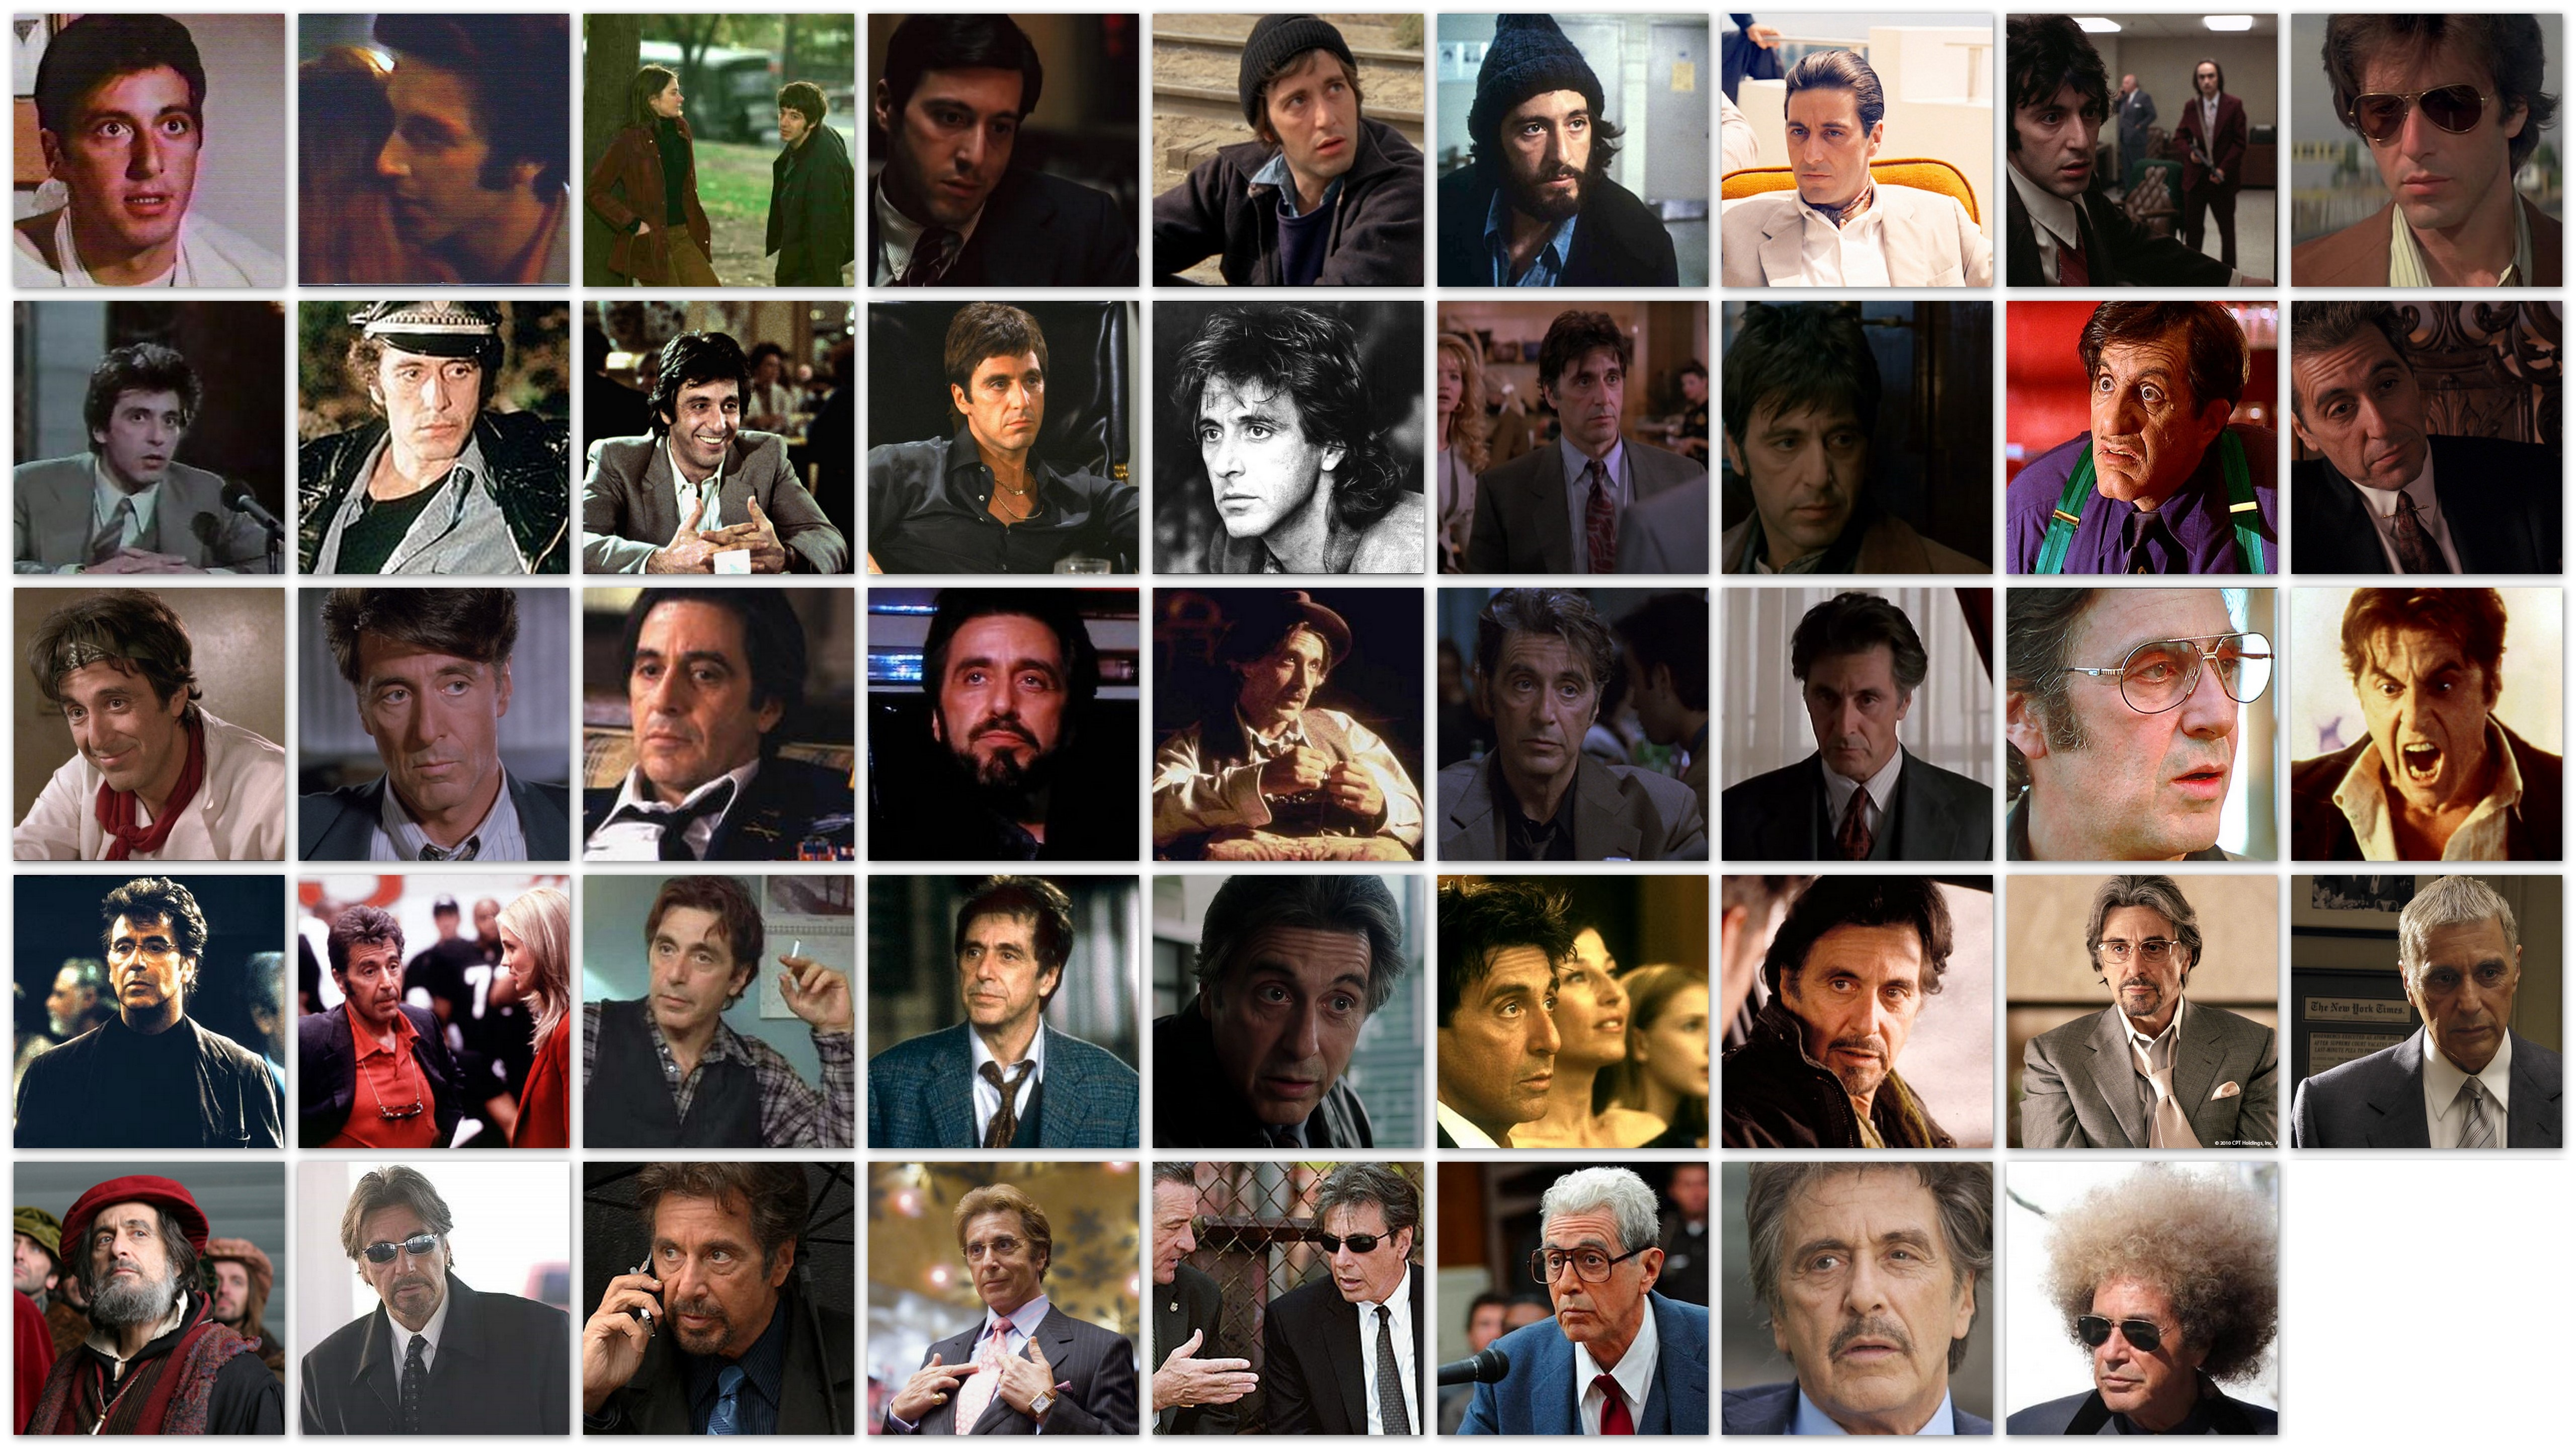 An overview of the roles of actor Al Pacino